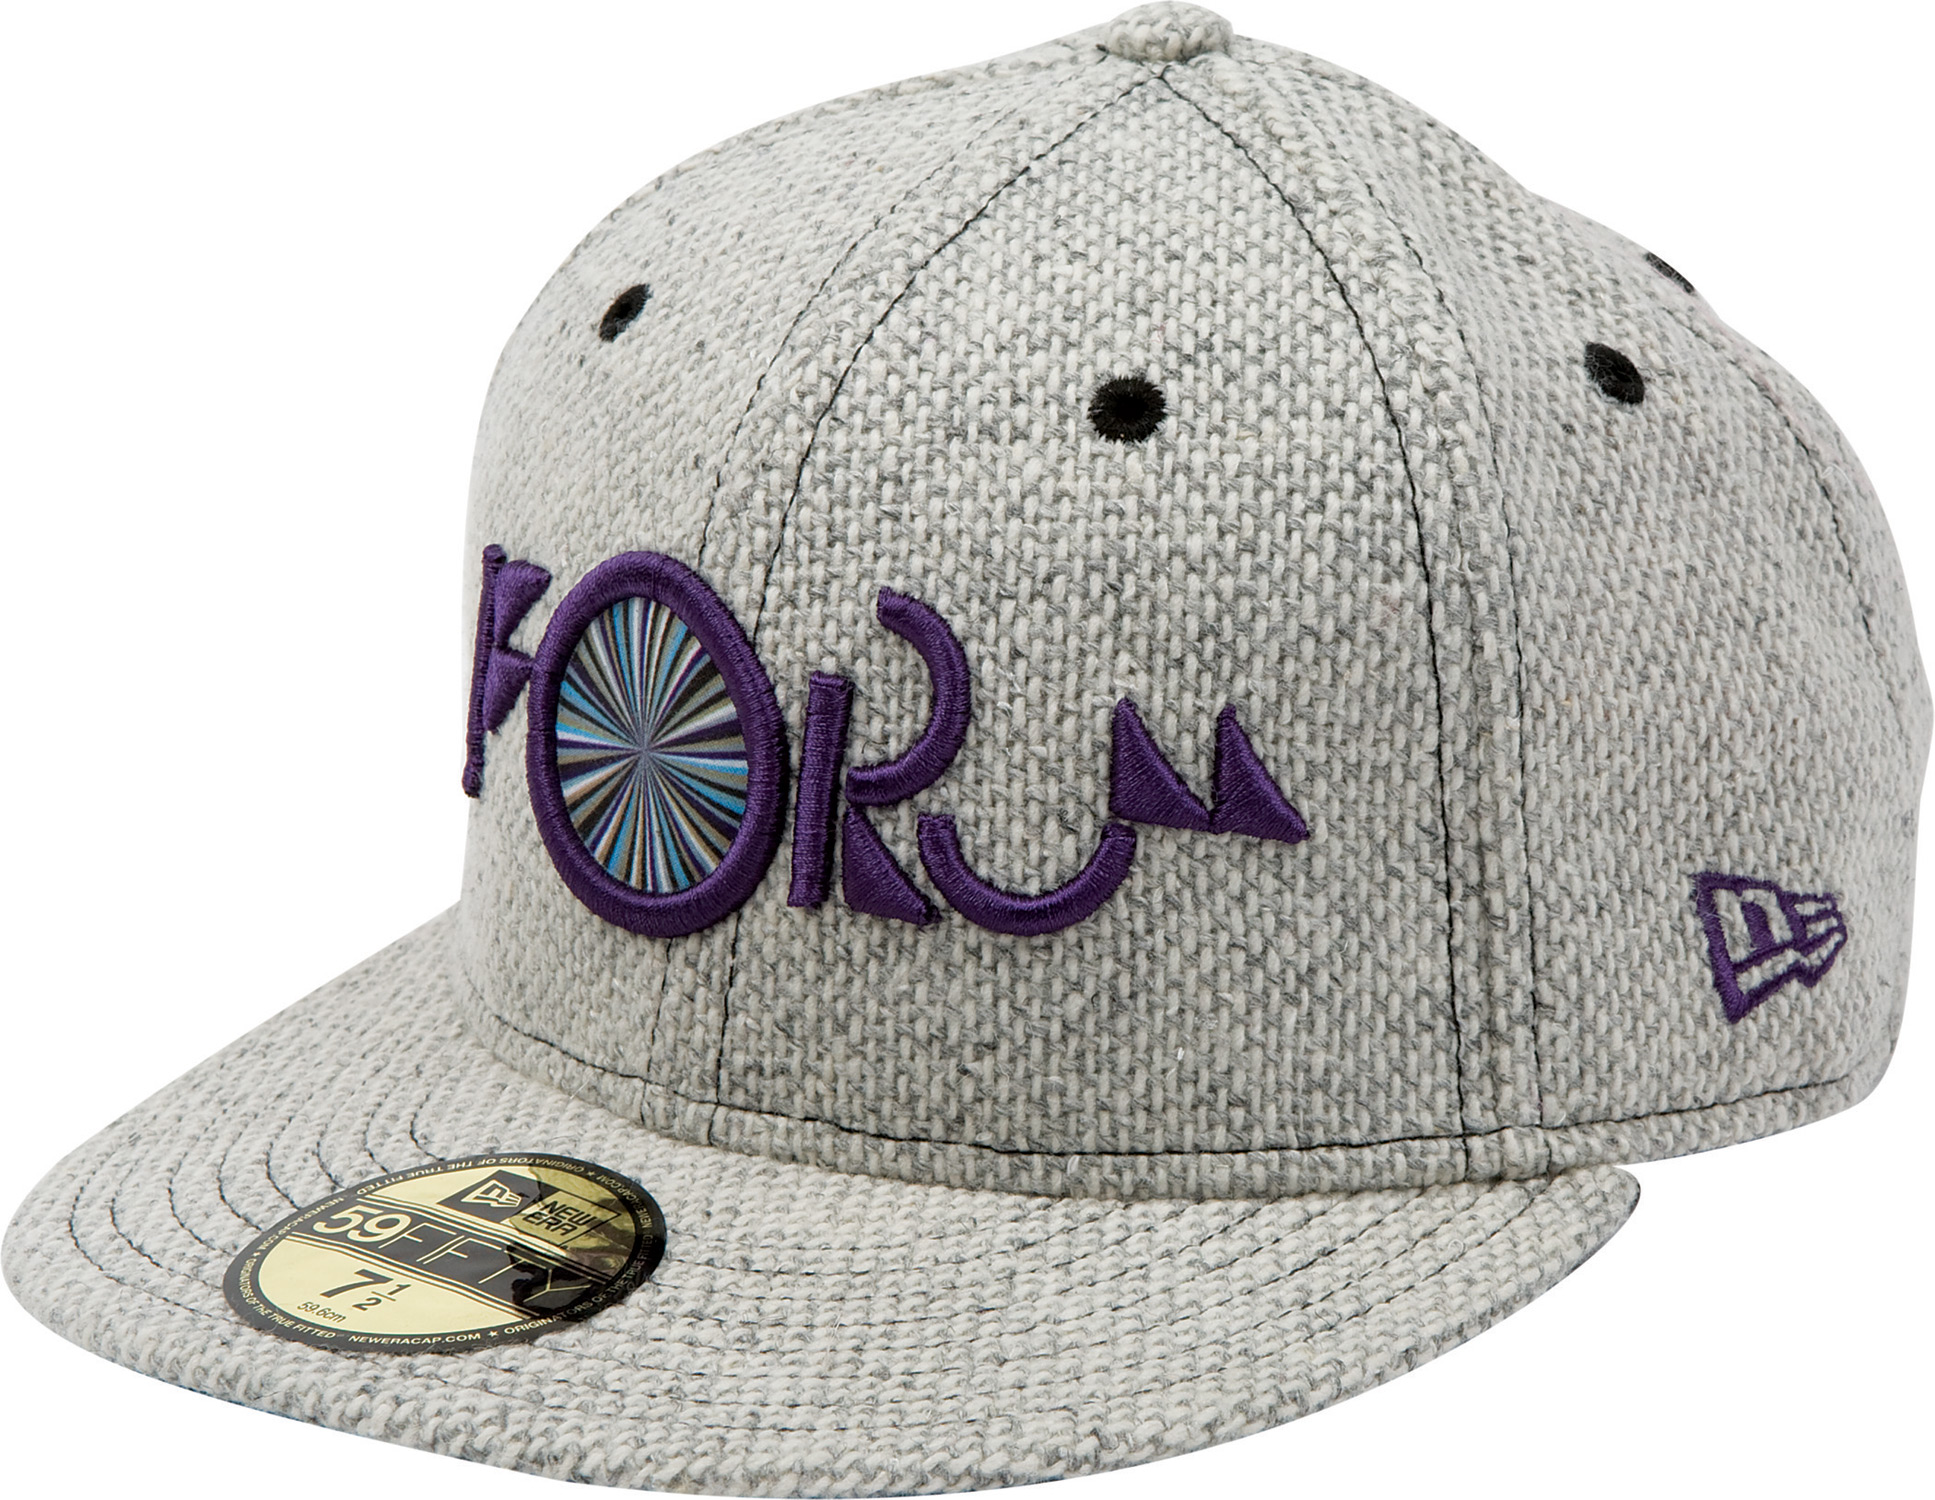 Key Features of the Forum Nugget New Era Cap: 3D embroidery 59/50 100% wool - $34.95